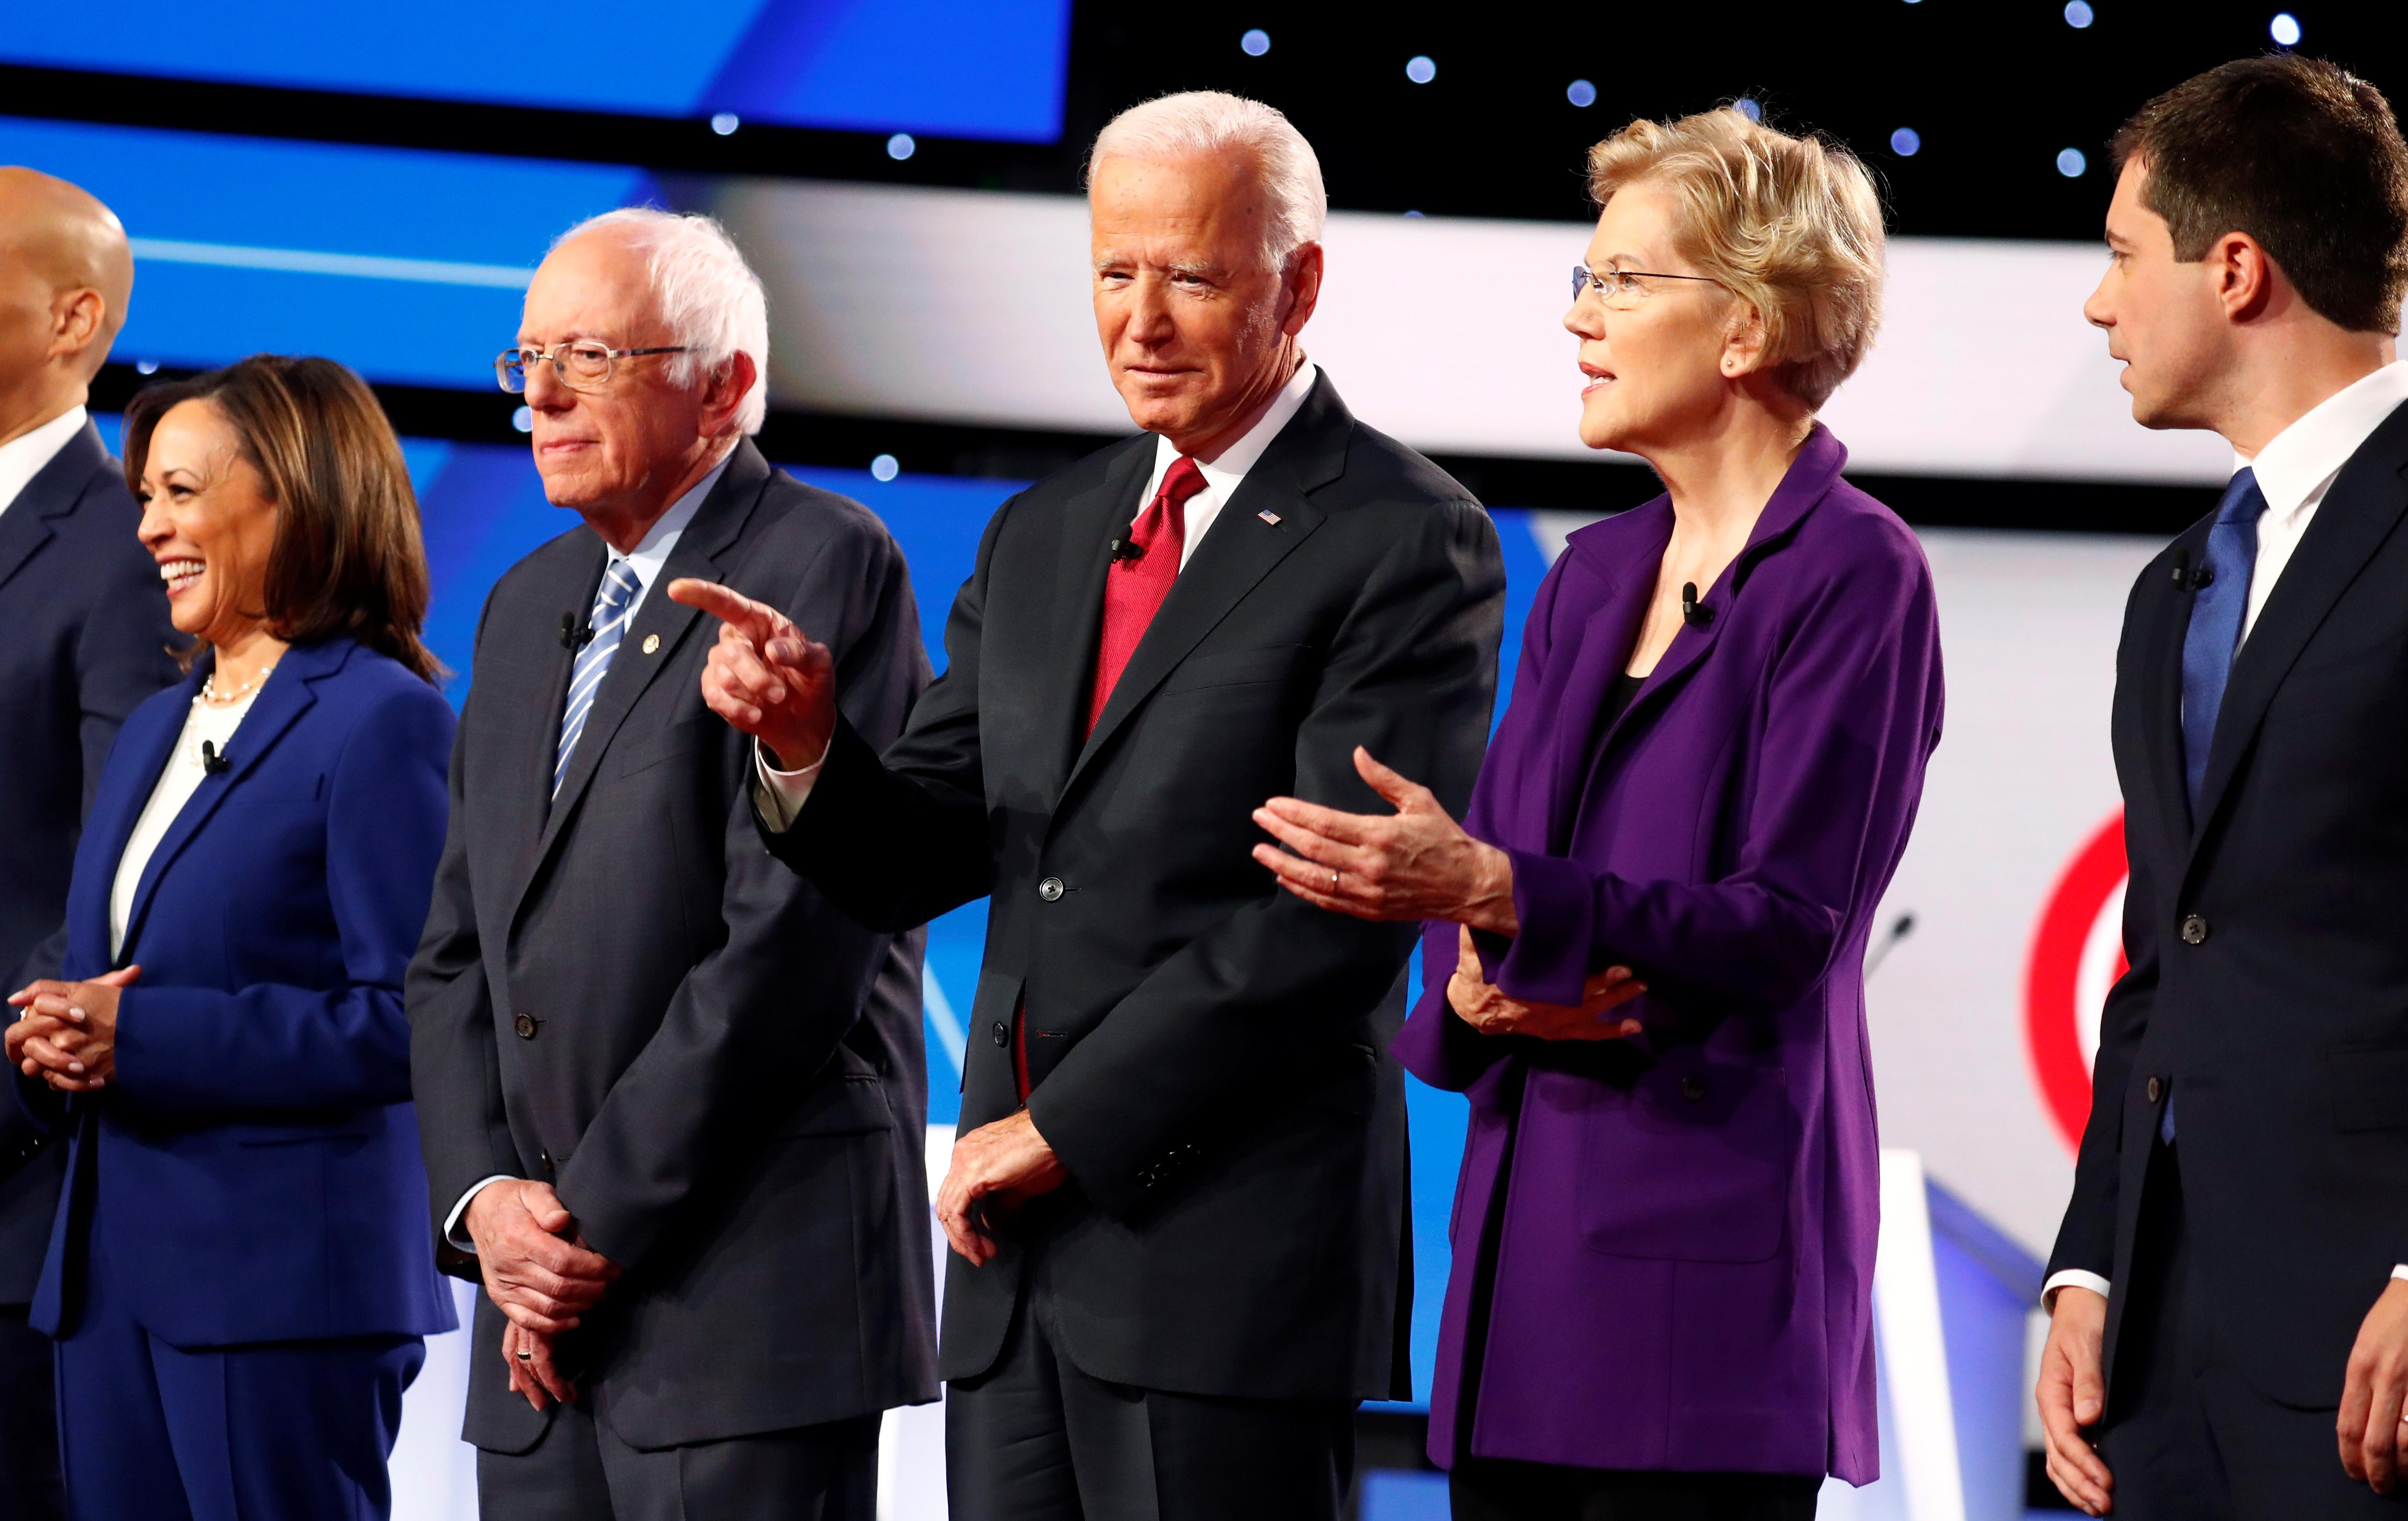 U.S. Democrats back on 2020 campaign trail after debate attacks on...